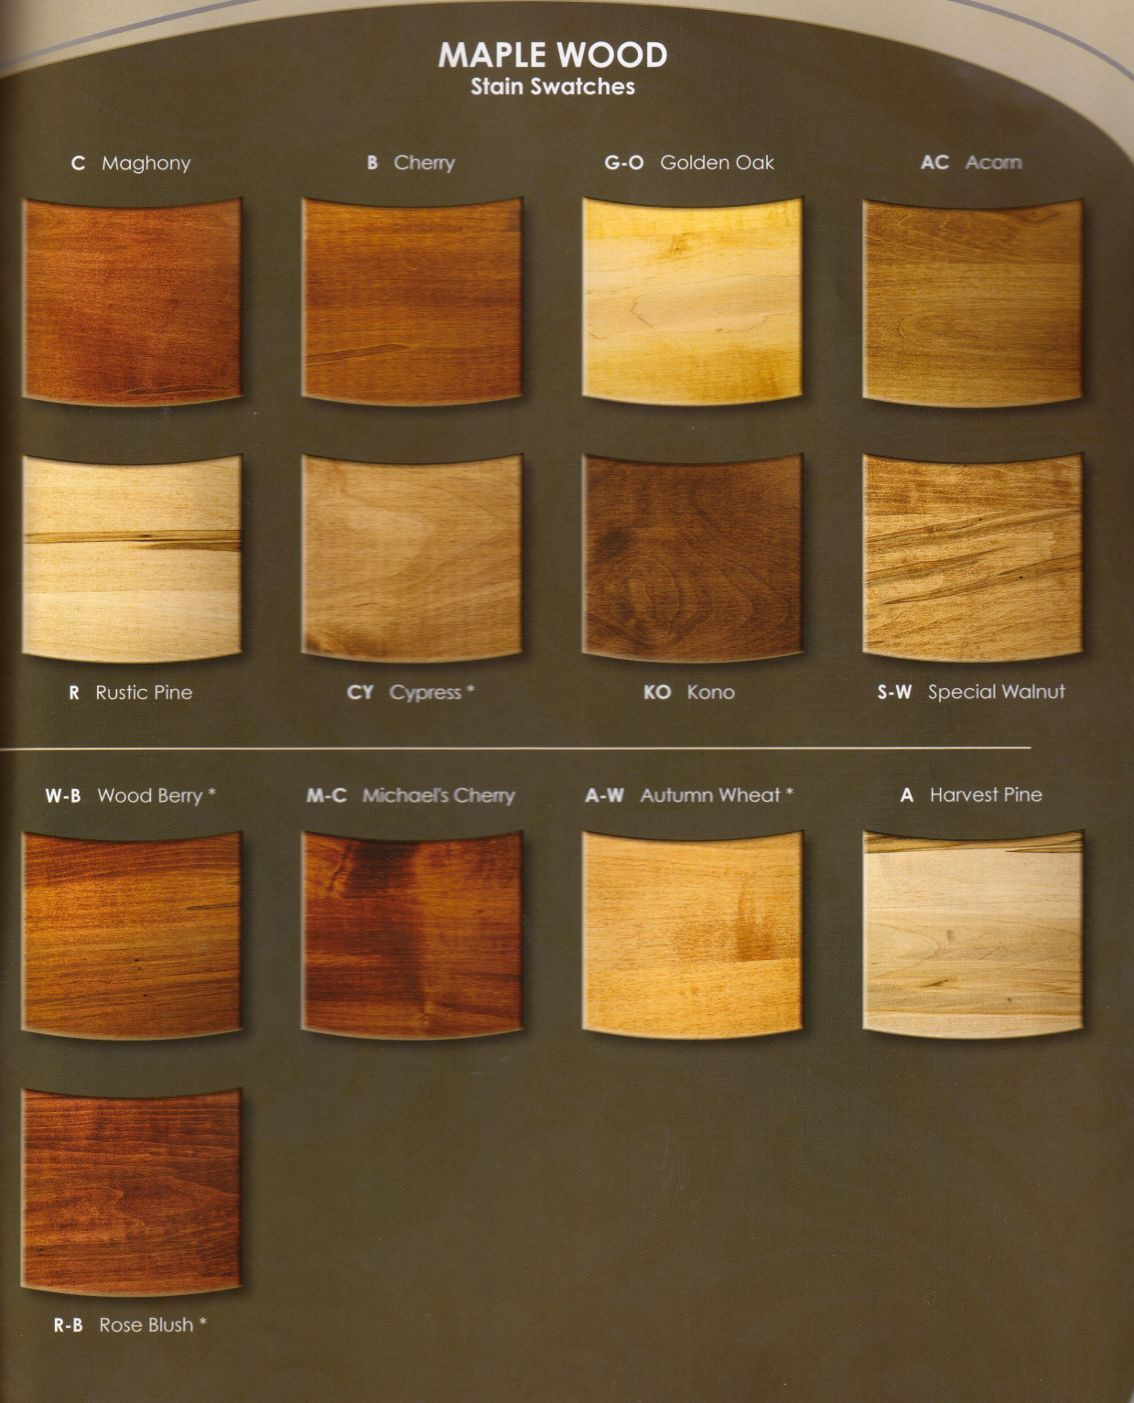 hardwood floor stain color trends of minwax stain on maple google search boys room decor pinterest regarding minwax stain on maple google search minwax stain colors hardwood floor stain colors